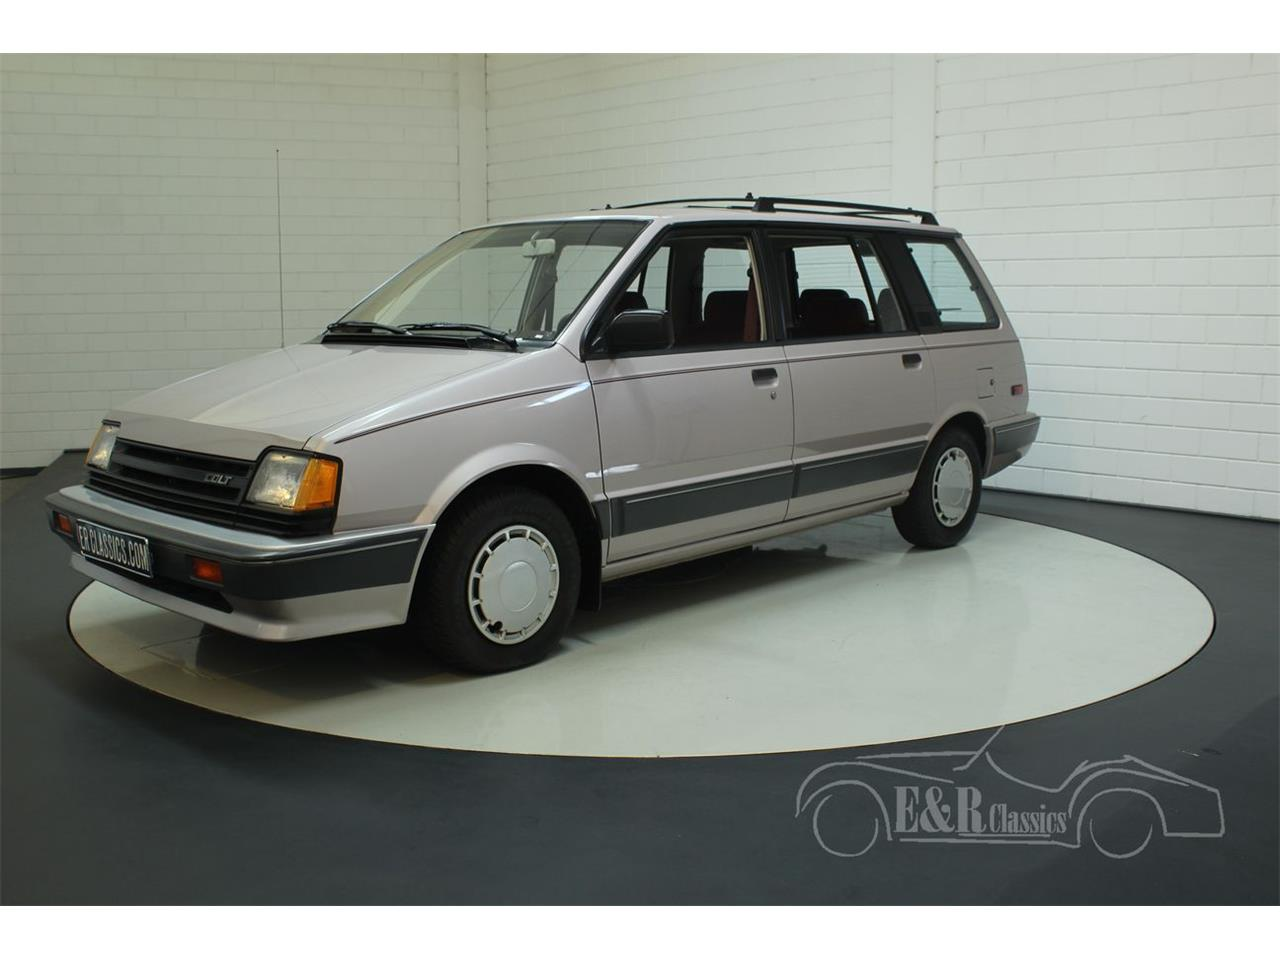 Large Picture of '87 Colt - $16,900.00 Offered by E & R Classics - PVV4